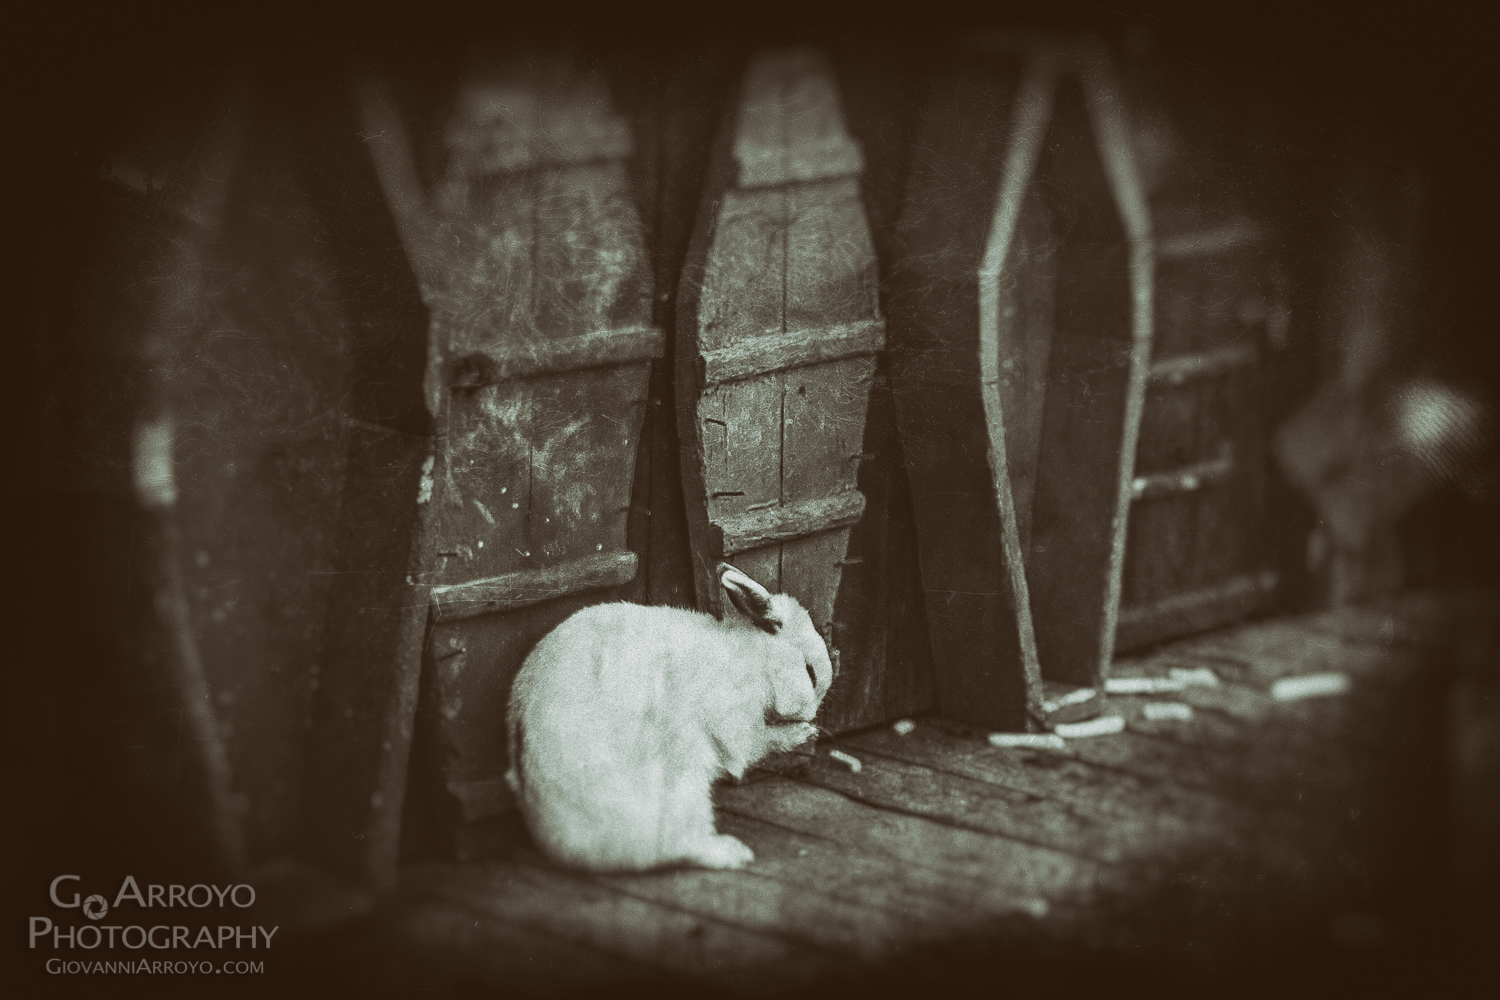 Freaky Bunny Photograph by Giovanni Arroyo using Nik Analog Efex